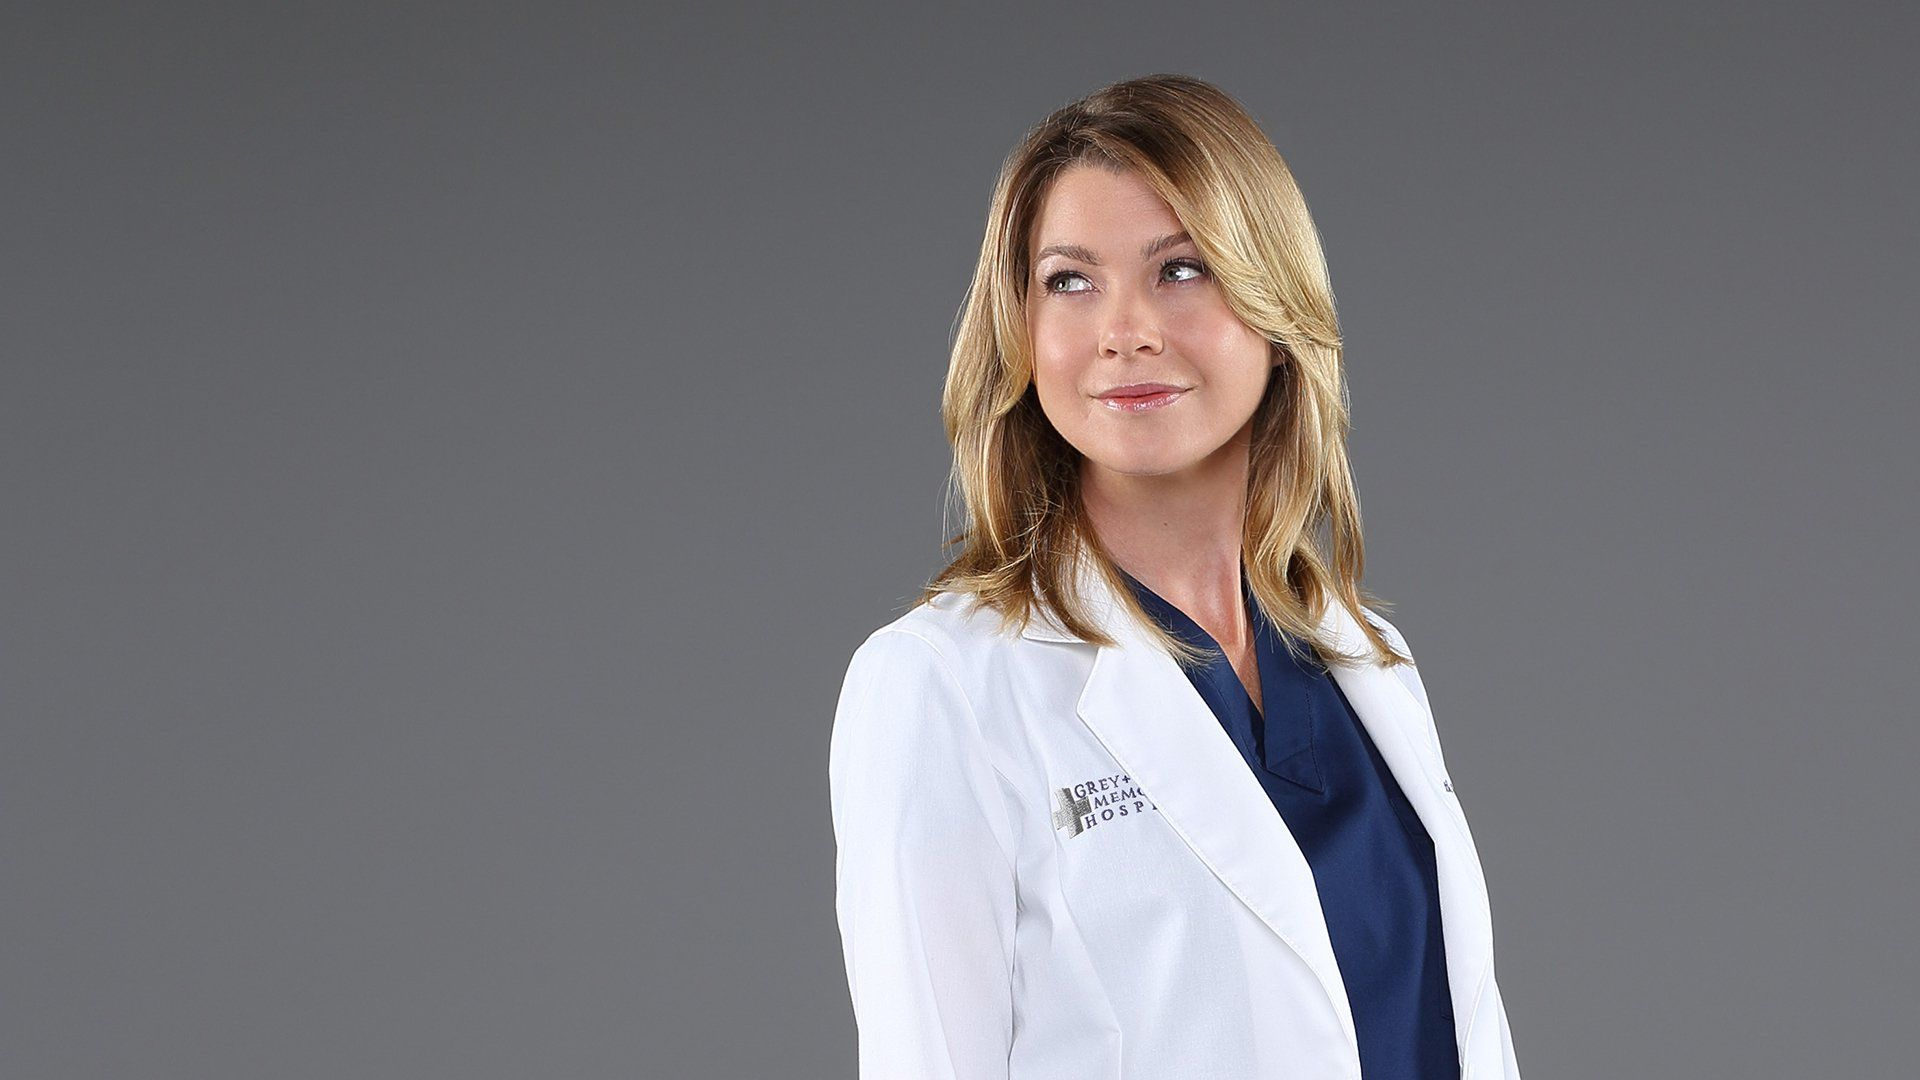 Fullwatch Greys Anatomy Season 14 Episode 2 Get Off On The